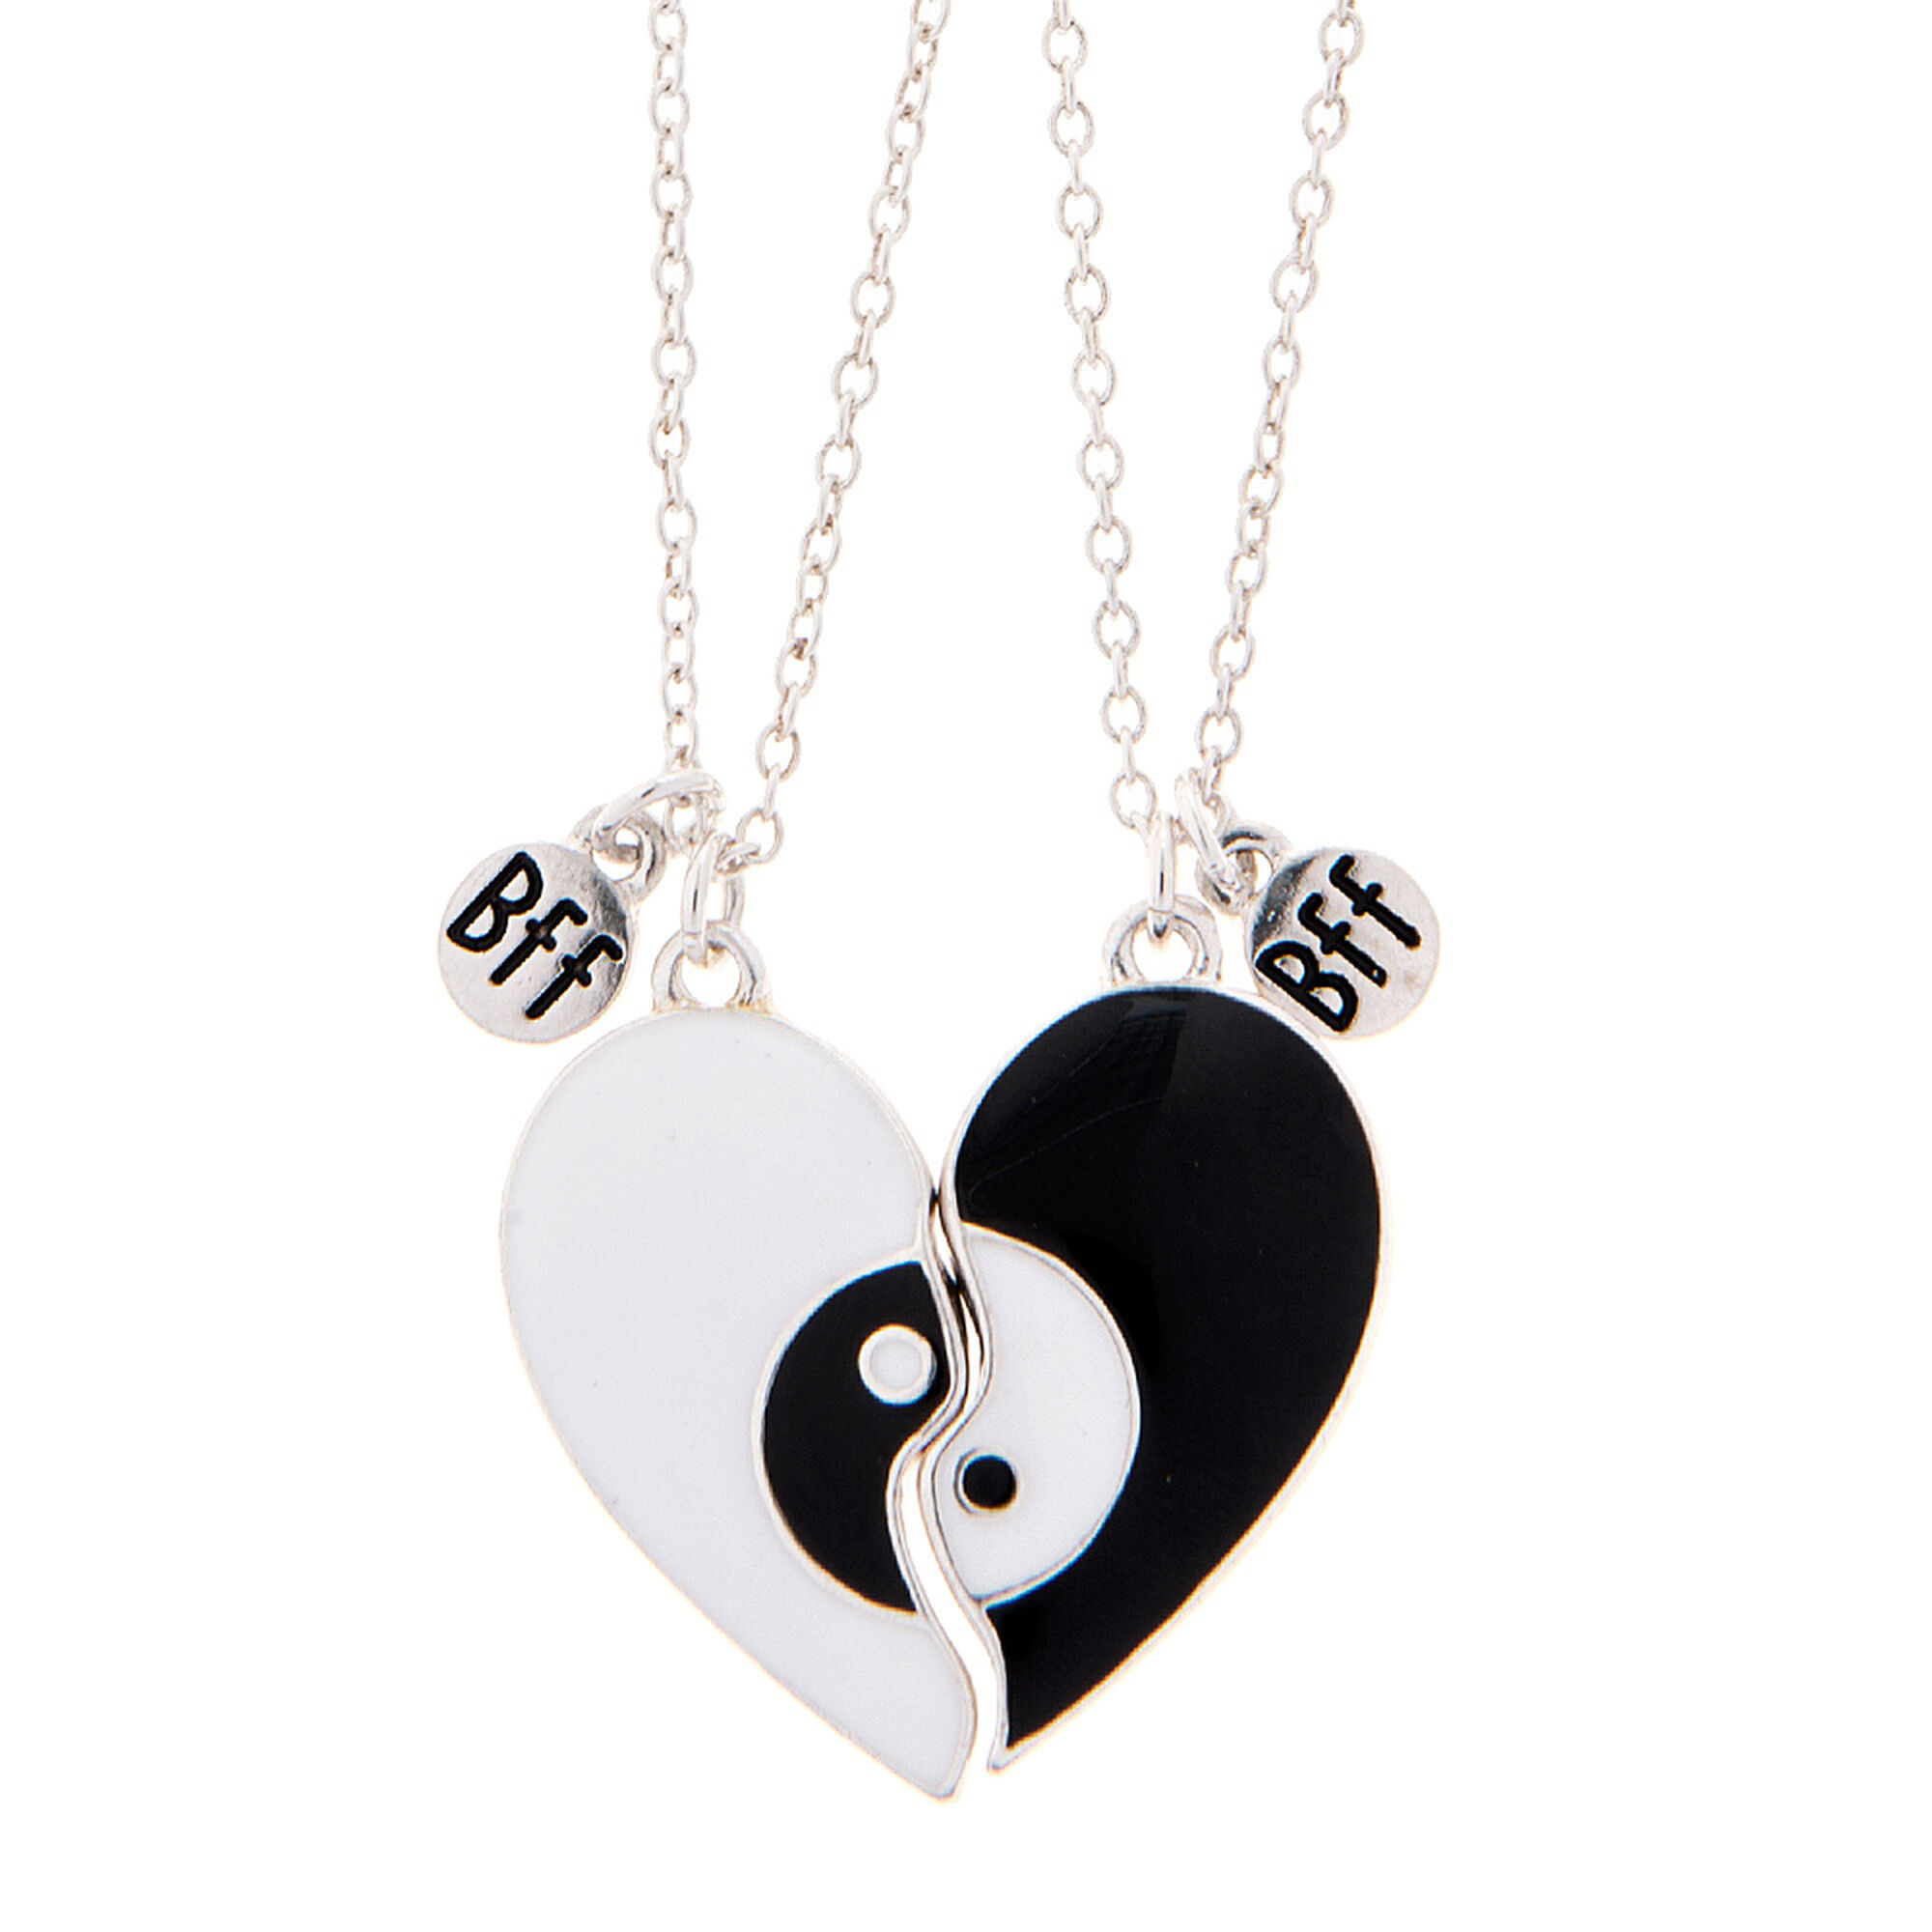 img necklace forget ondazzle hearts love double two heart products granddaughter never i that you